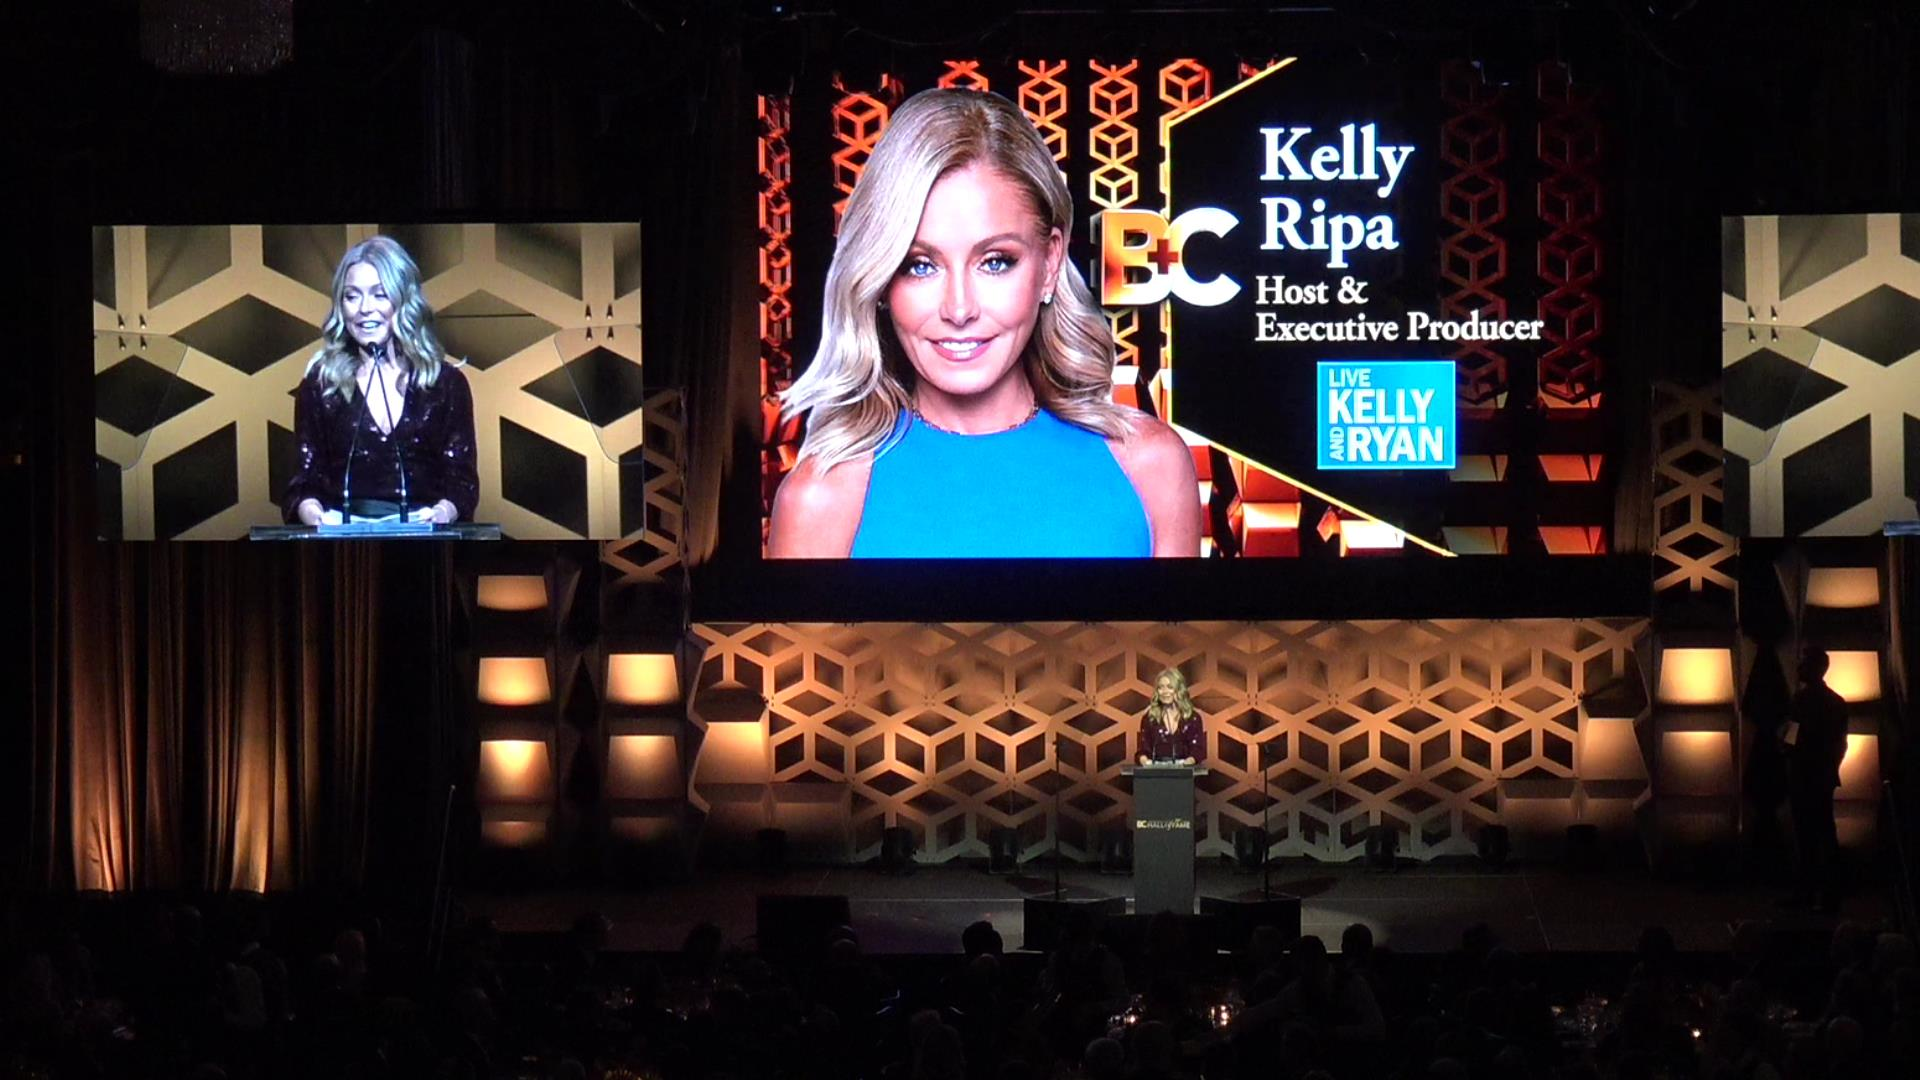 2019  Hall of Fame Honoree Kelly Ripa